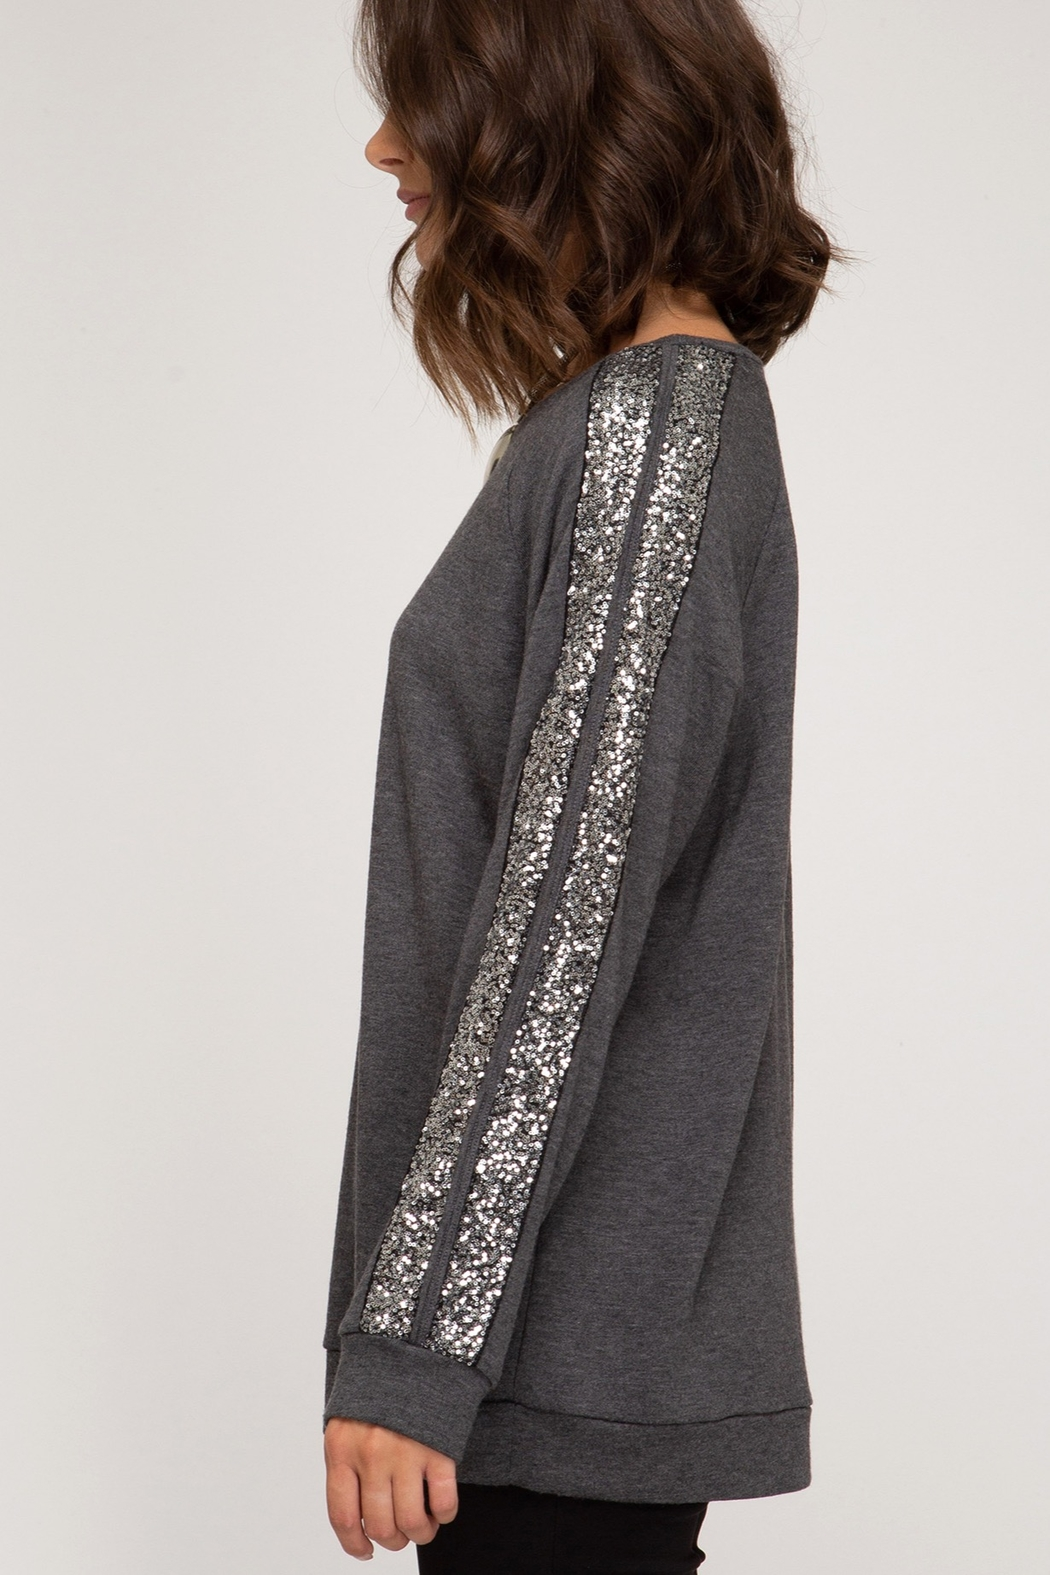 She and Sky LONG SLEEVE KNIT TOP WITH SEQUIN TRIM AND SLEEVE SLIT DETAILS - Front Full Image